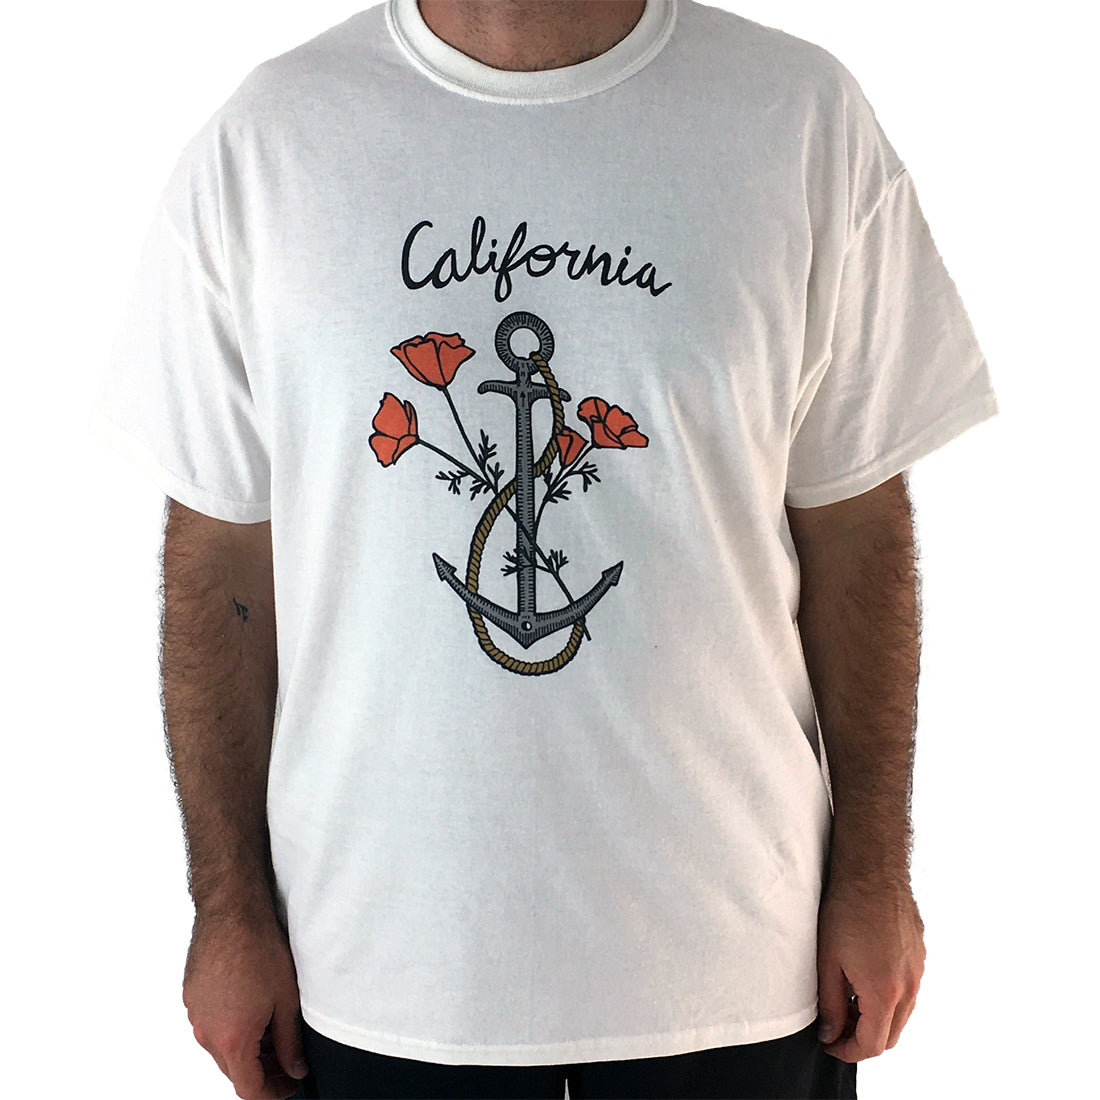 California Anchor with Poppies Men's Lightweight Fitted T-Shirt/Tee